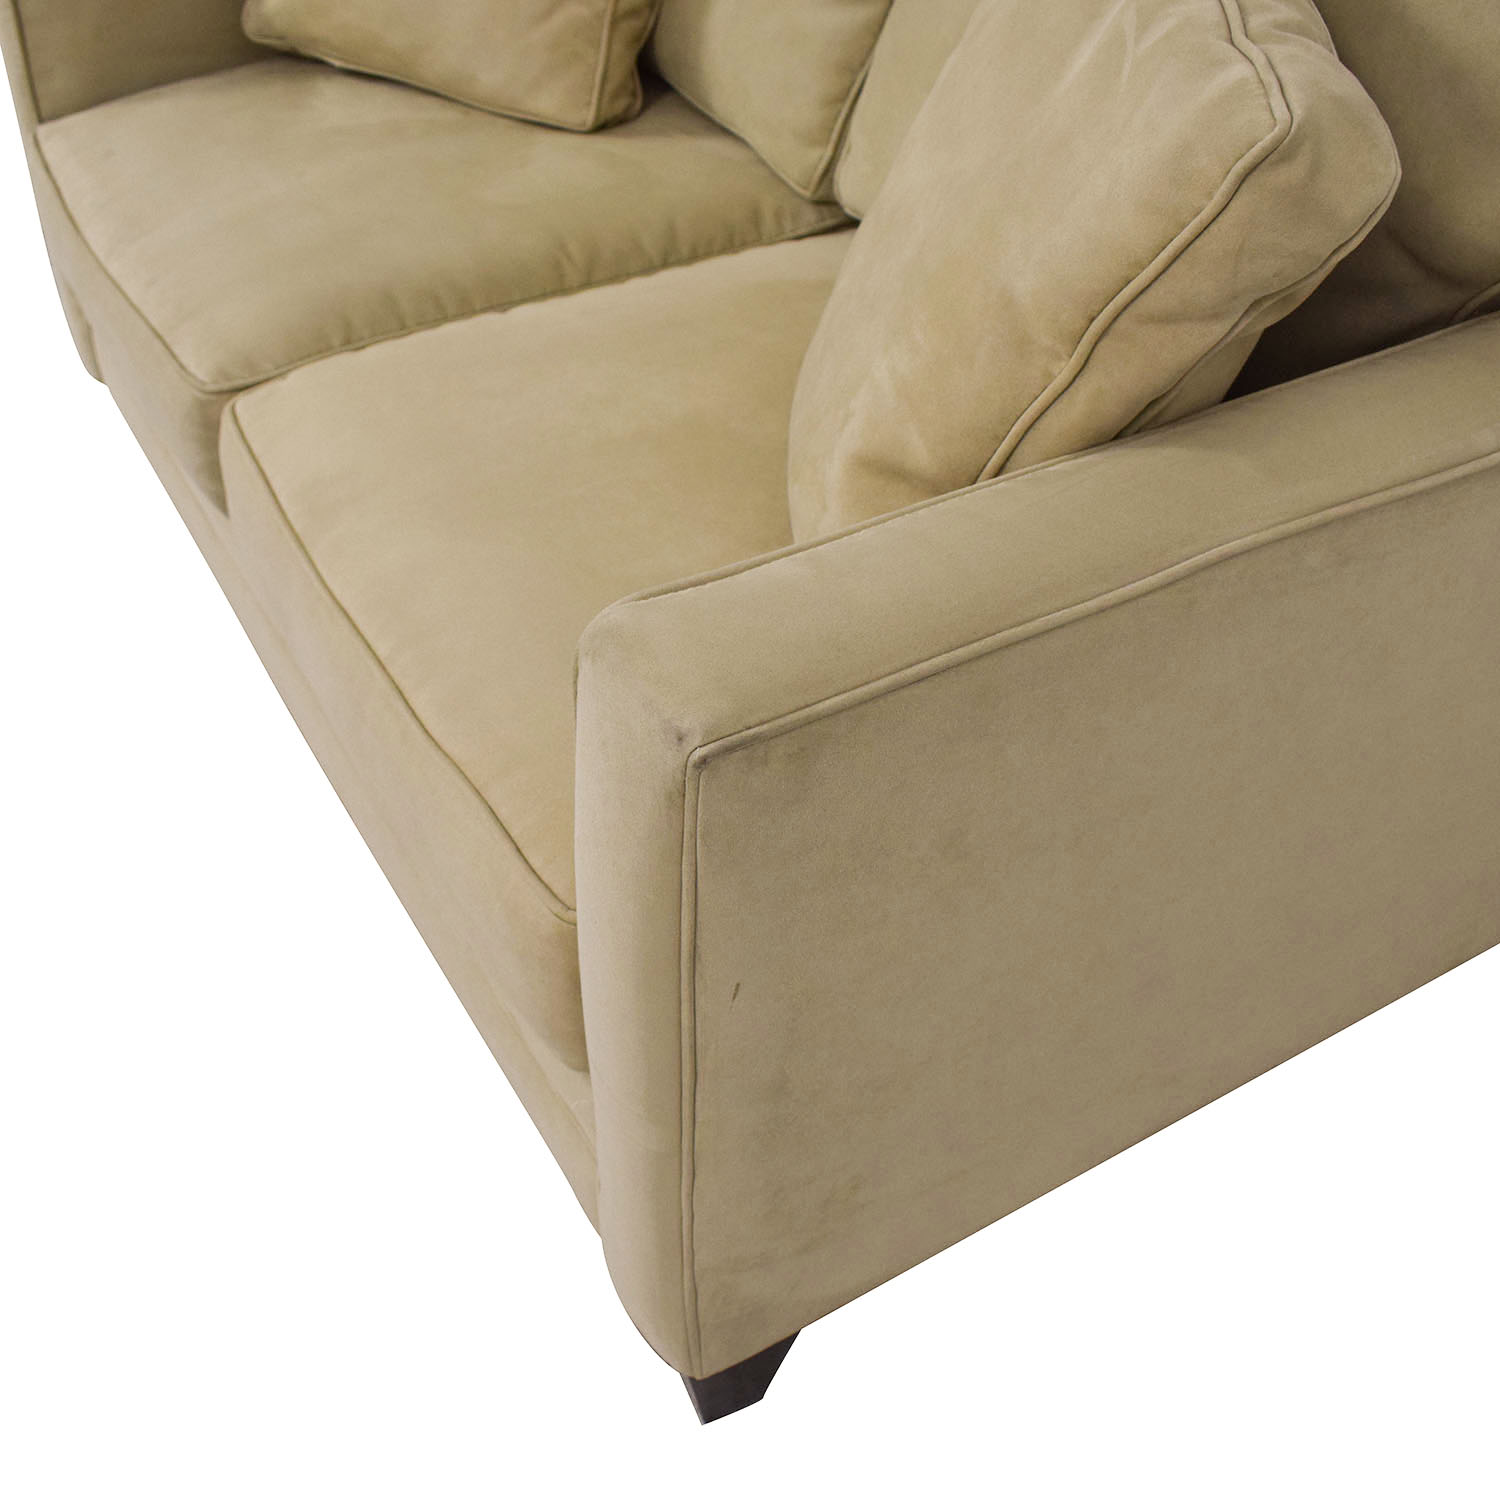 Bauhaus Furniture Bauhaus Furniture Suede Loveseat discount